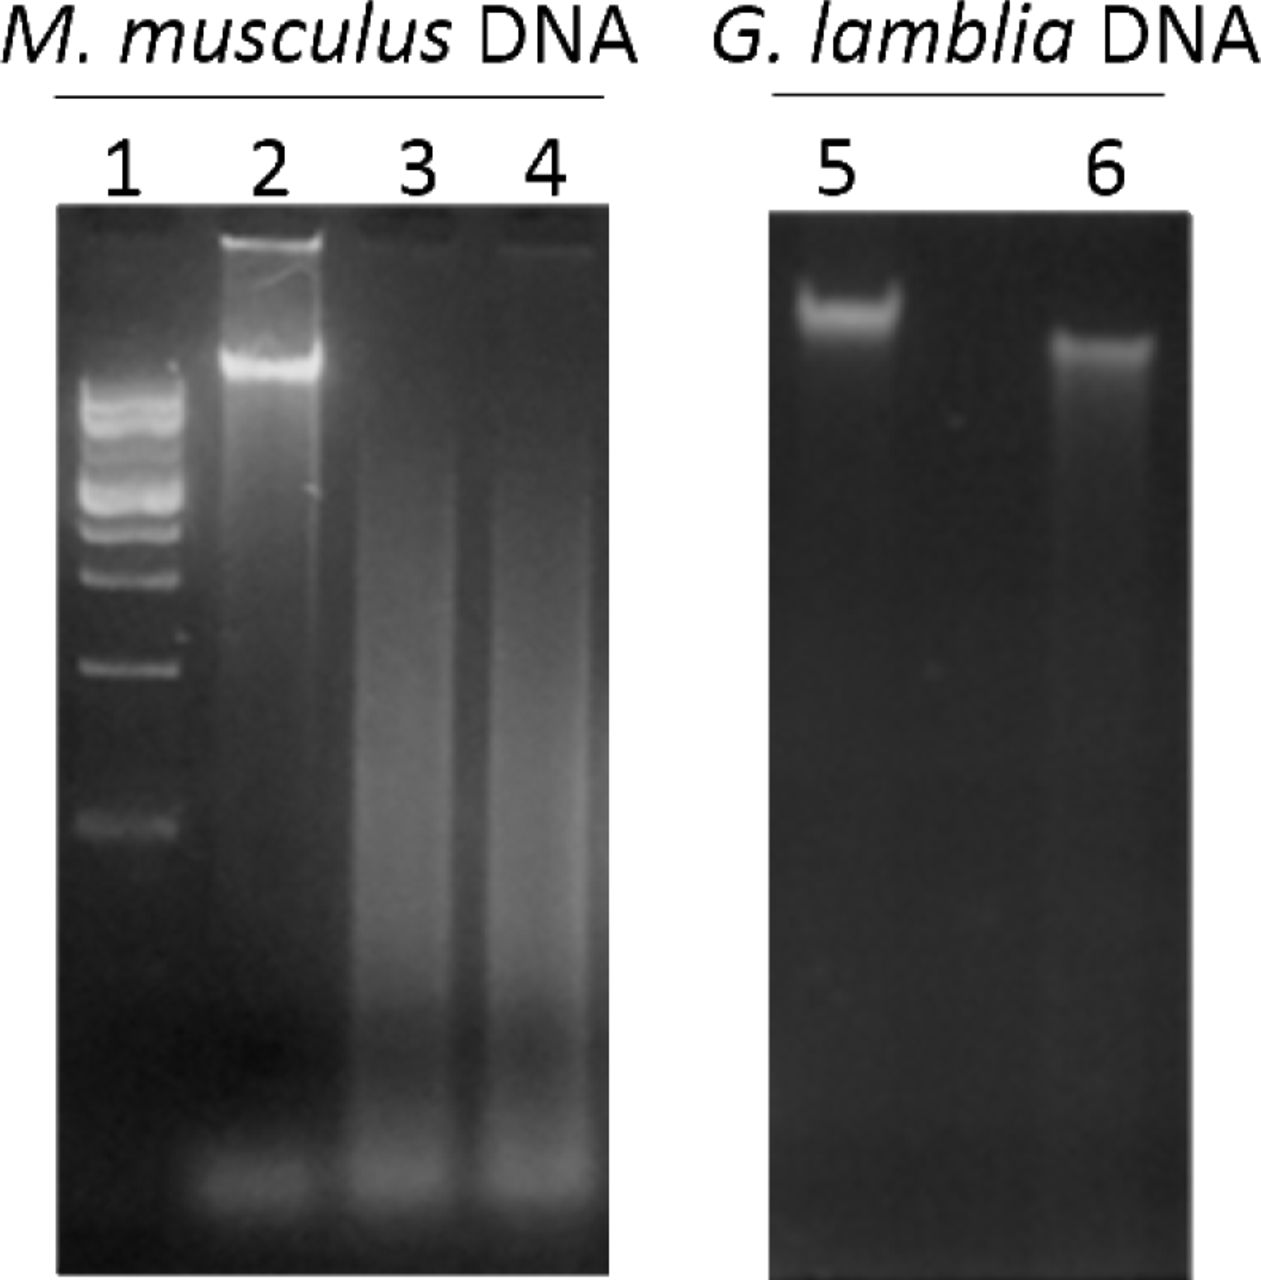 Electrophoresis of genomic DNA from M. musculus or G. lamblia digested with MspJI. Lane 1: 1kb DNA ladder; lane 2 and 5: undigested DNA; lanes 3 and 6: DNA incubated with MspJI for 4 hs; lane 4: DNA incubated with MspJI for 8 hs.